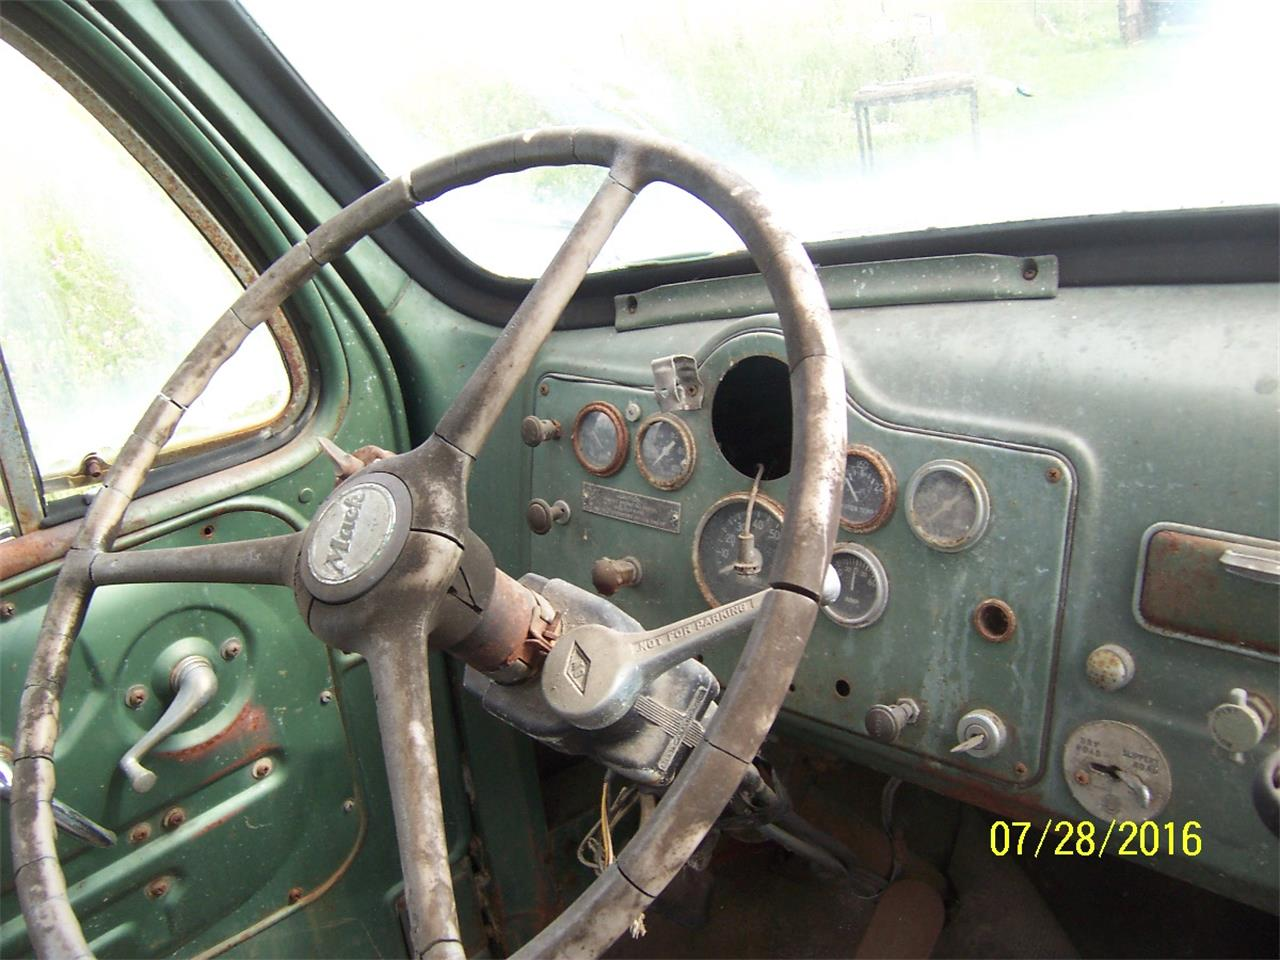 Large Picture of Classic '57 Mack B61 Truck located in Parkers Prairie Minnesota - $2,000.00 - KWPG